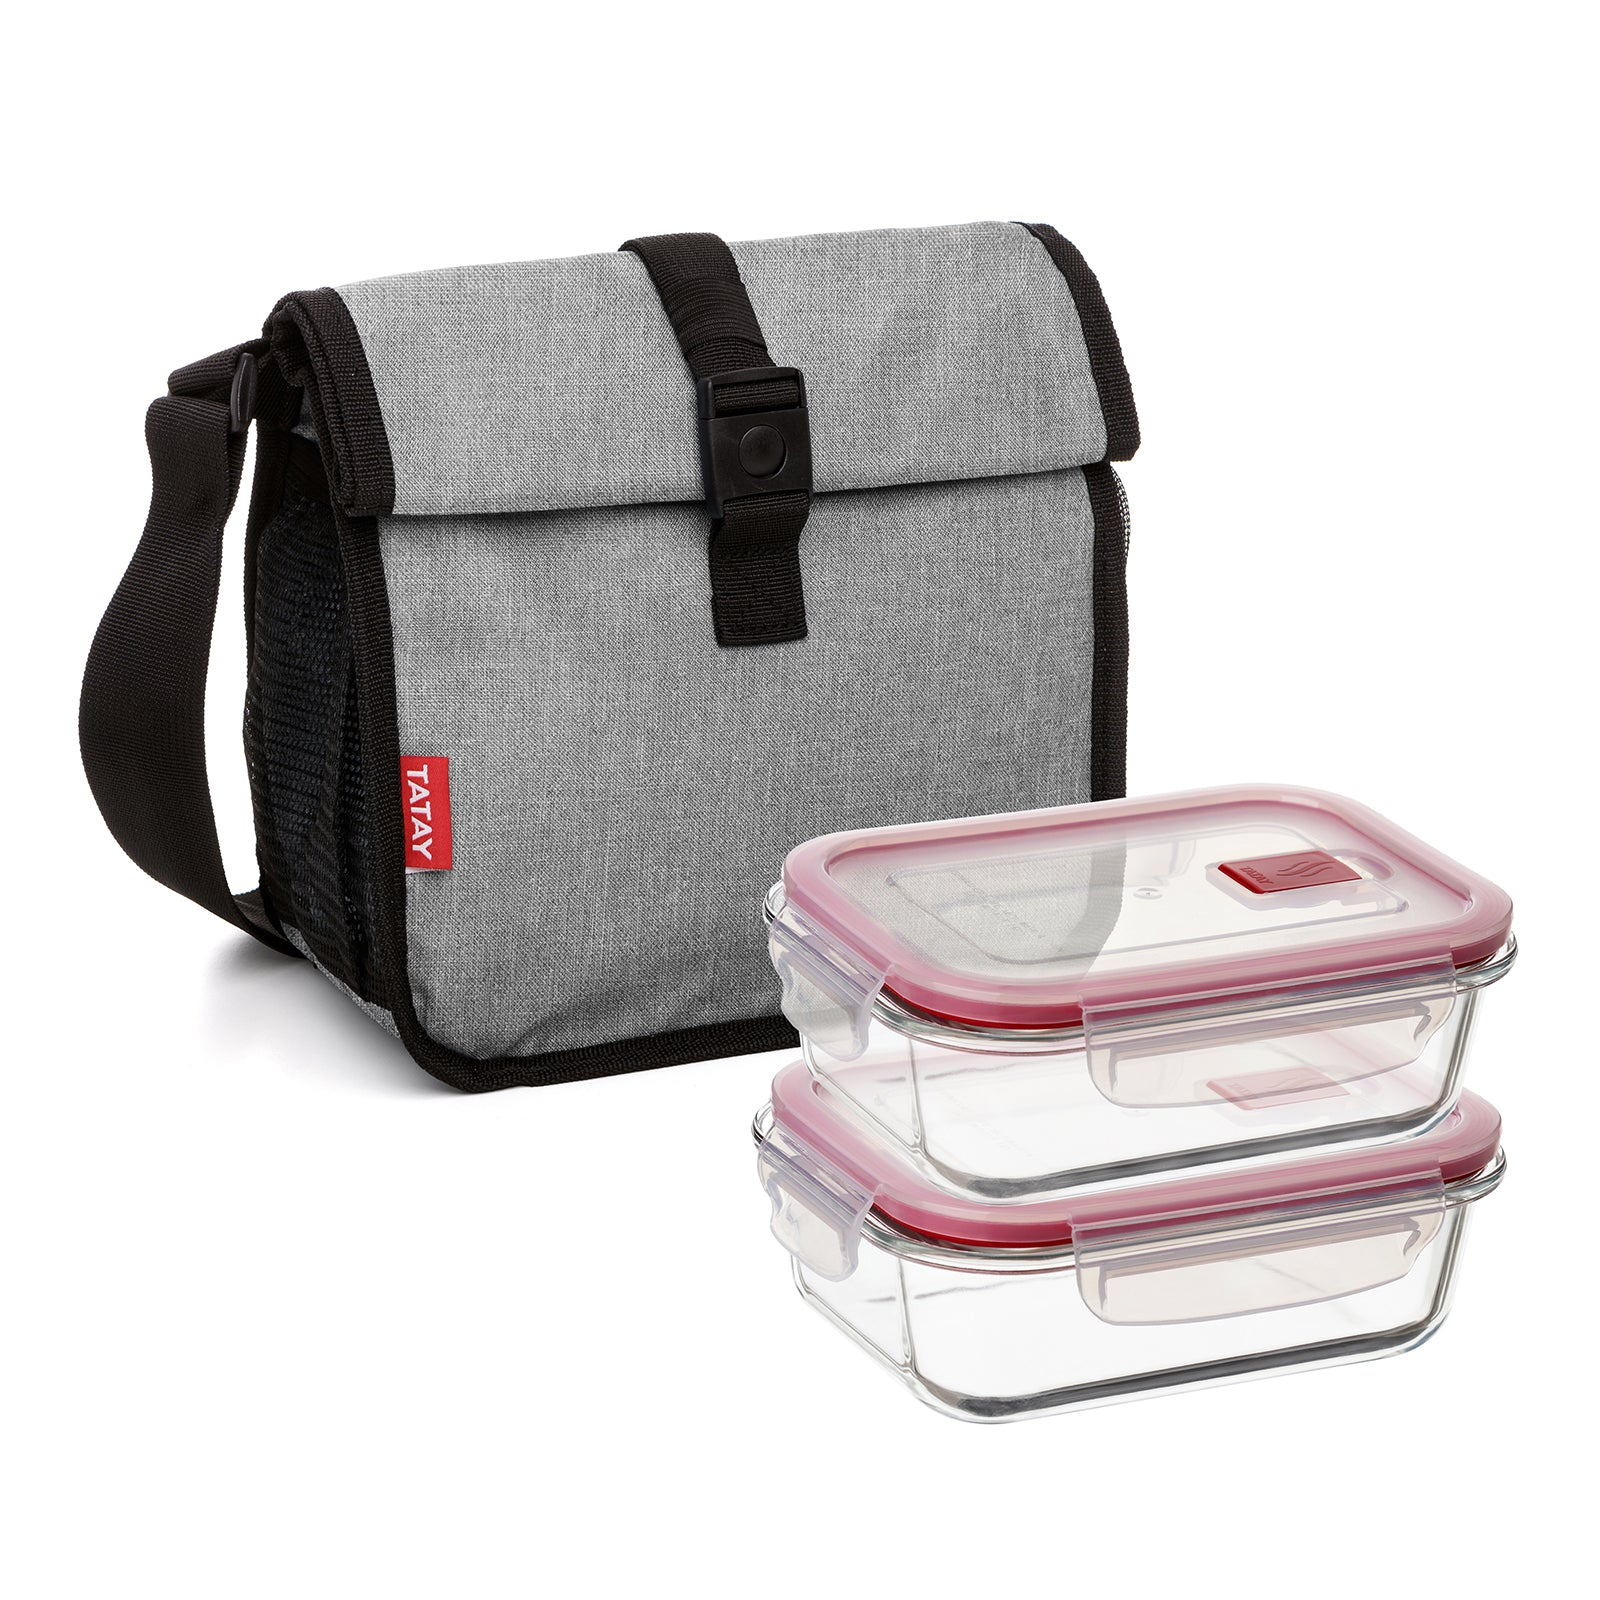 Tatay Urban Food Roll & Go Denim Grey con 2 Cook & Eat 0.64L